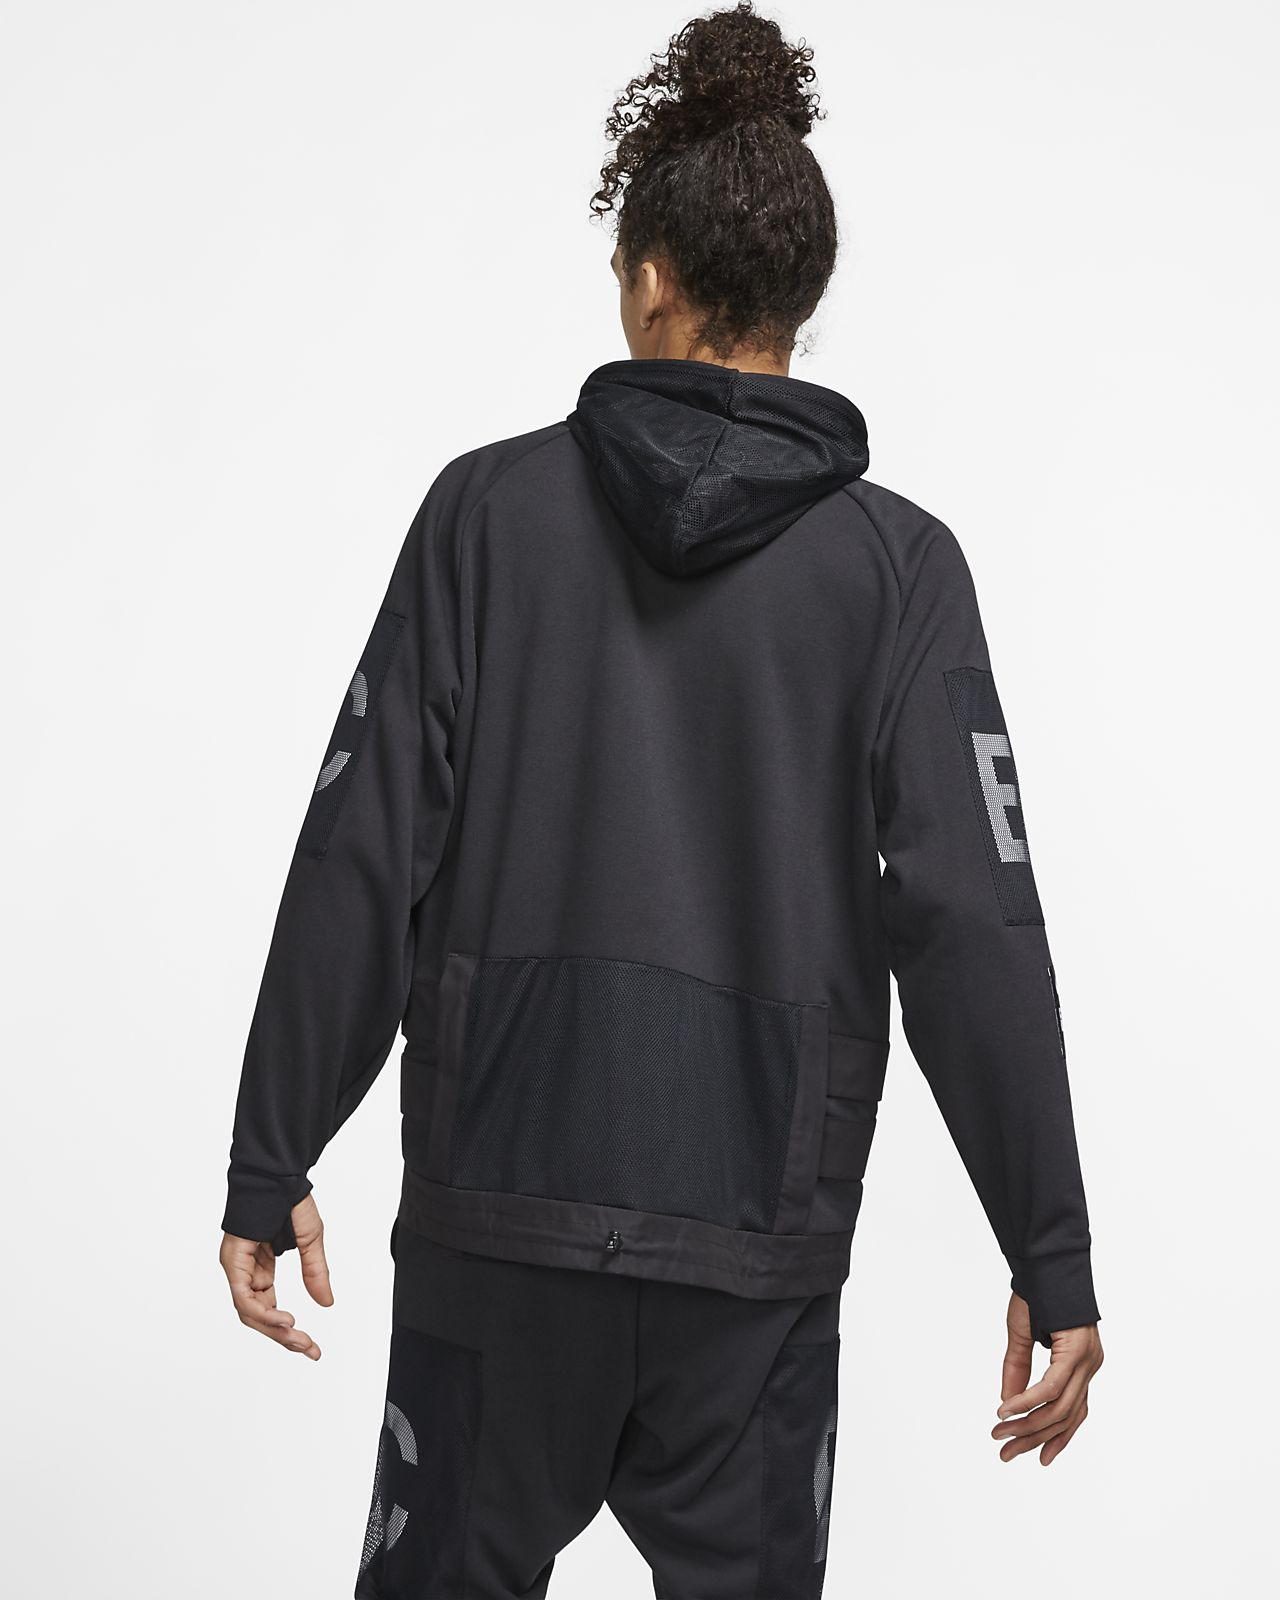 Nike x Undercover Men's Tracksuit